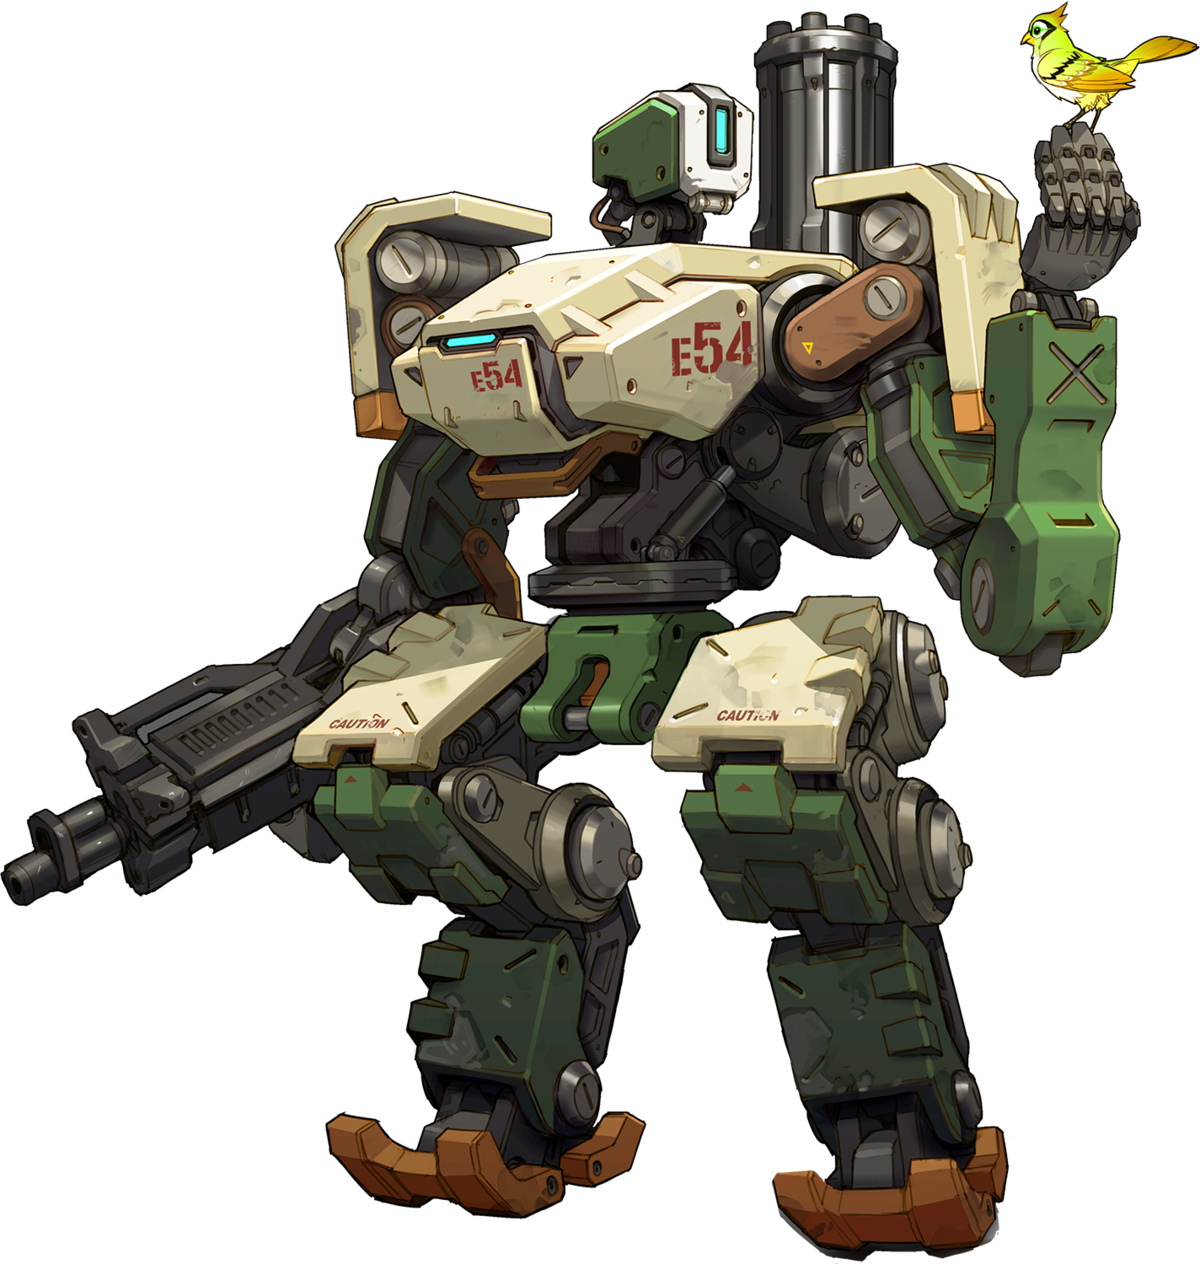 Bastion overwatch png. Wiki